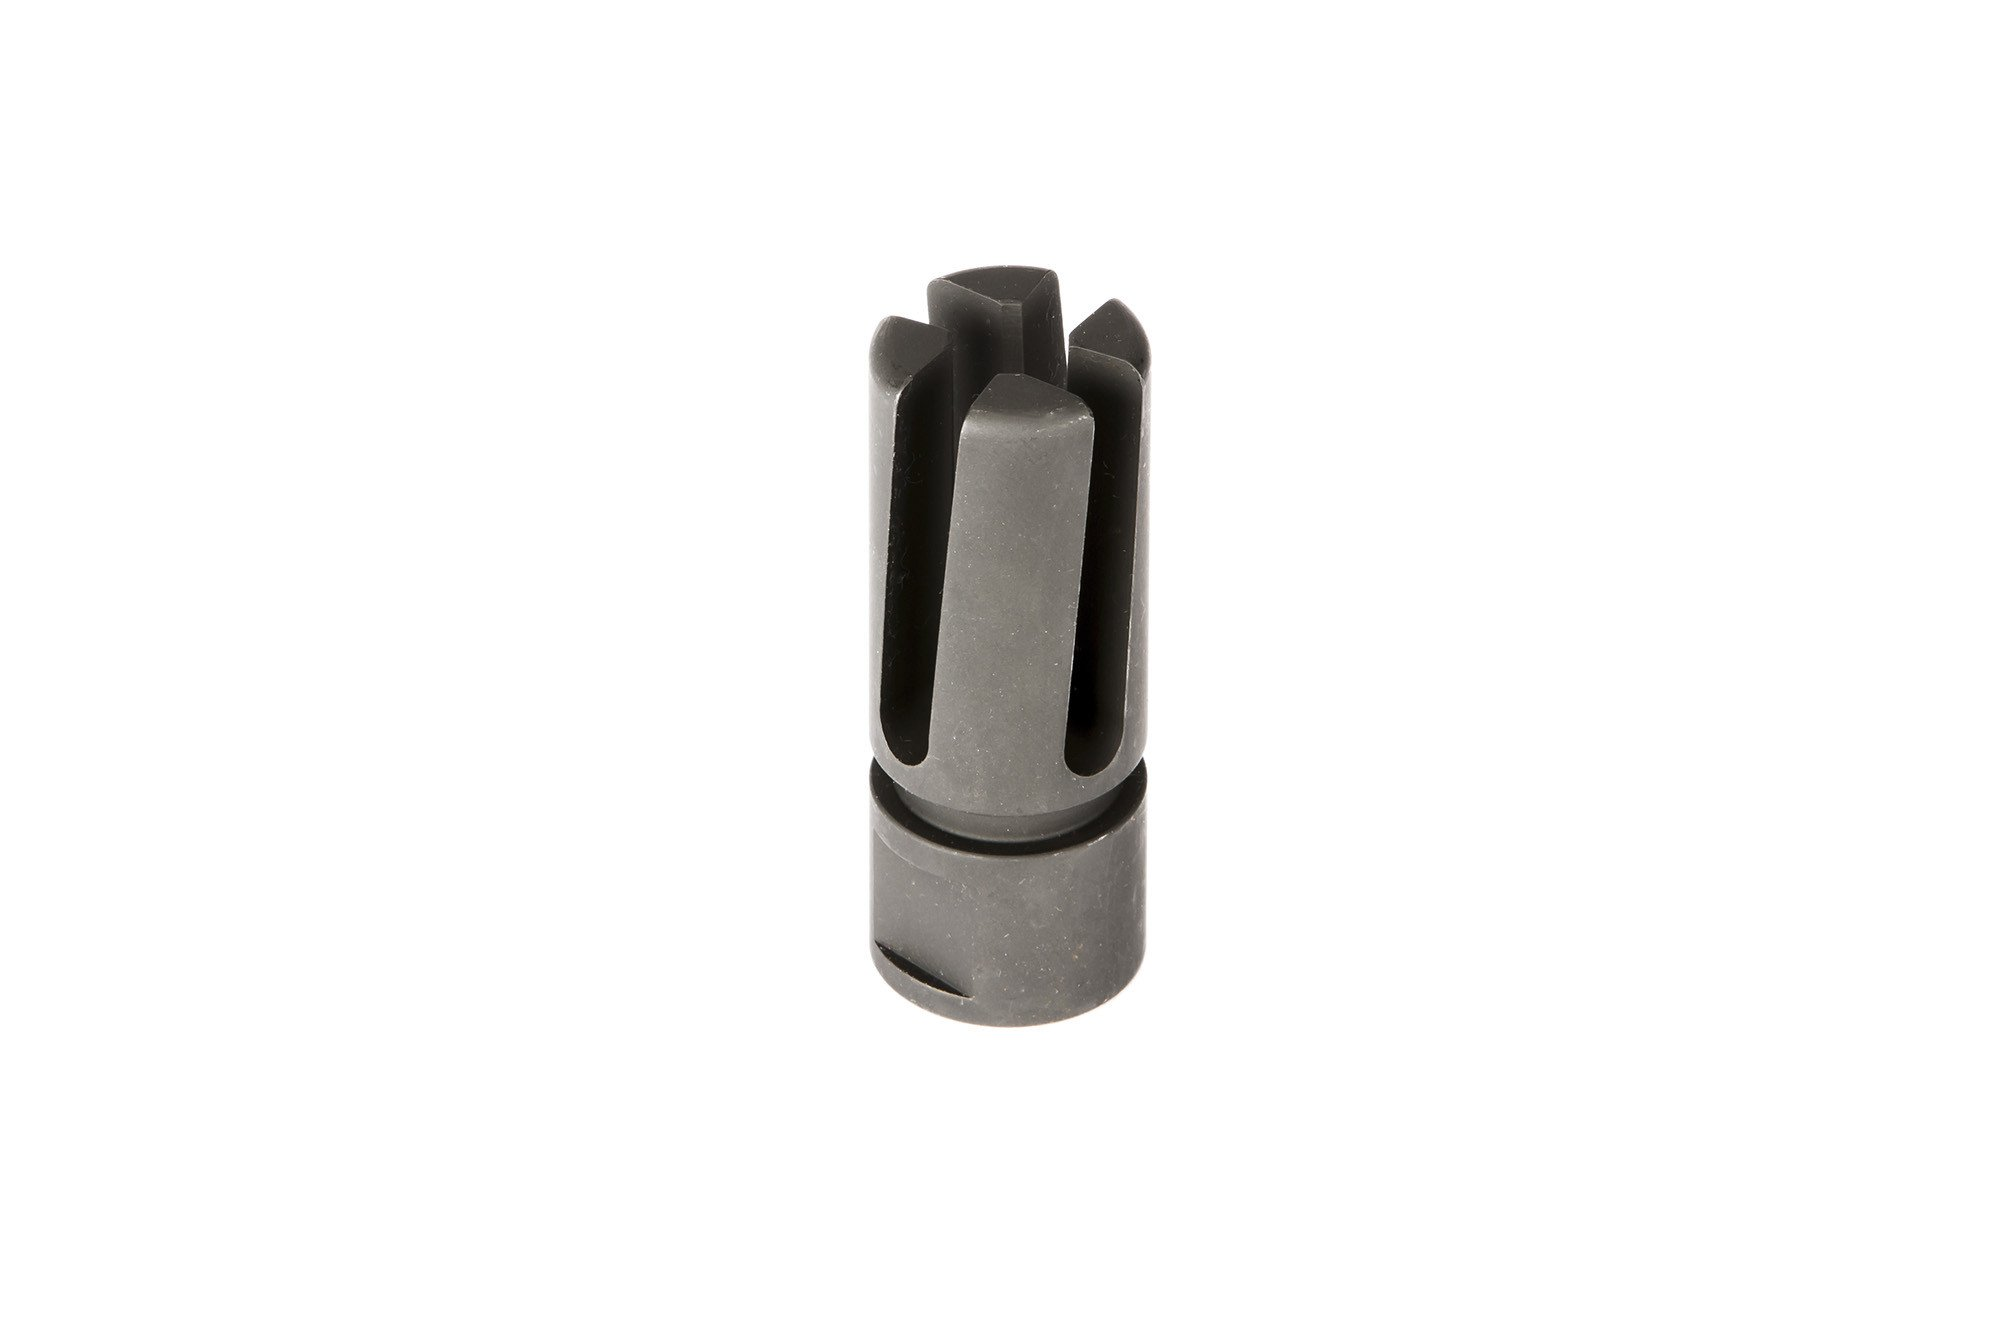 Smith Vortex Flash Hider